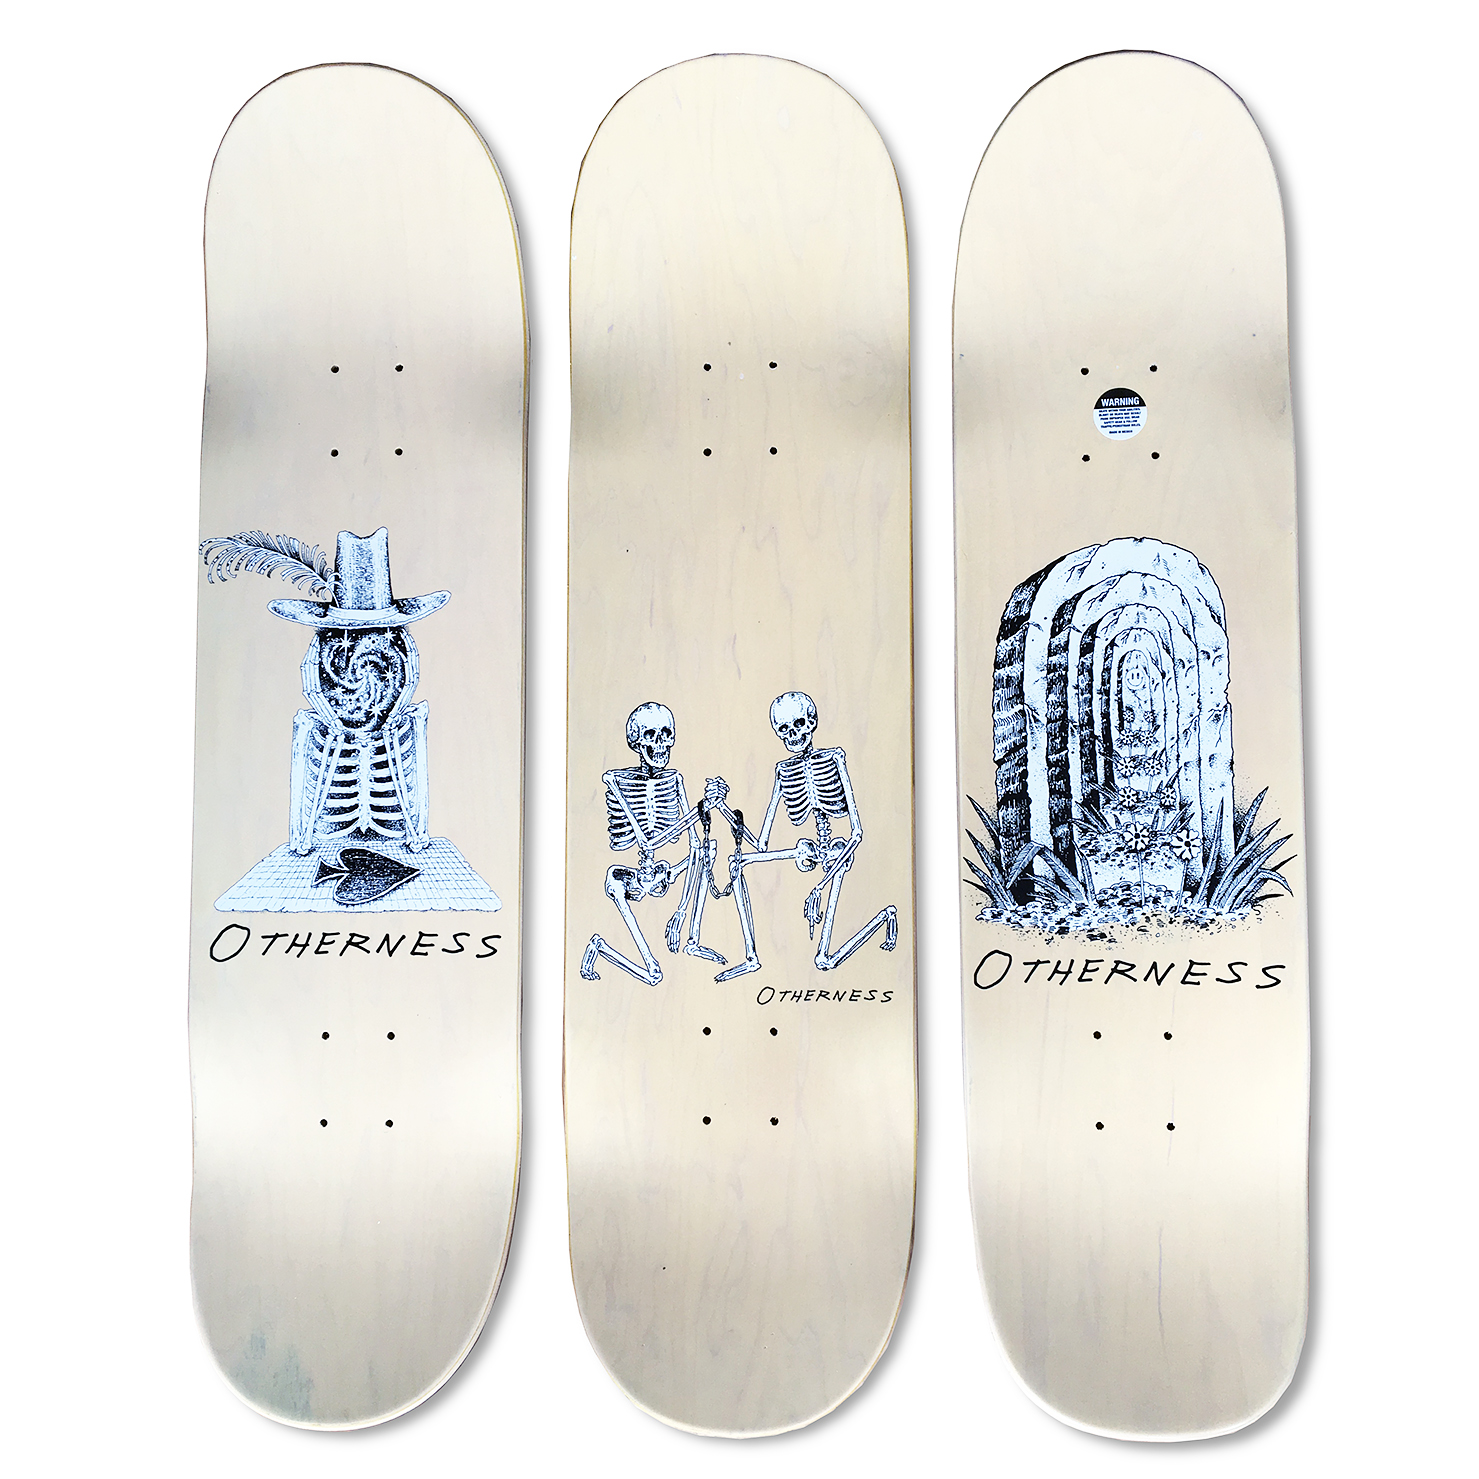 Just finished up a fun little project - I put together the graphics for Thom Hornung & Mat O'Brien's new board company called  Otherness . Pro models include Marc Johnson, Barker Barrett, and Shannon May.  Illustrations by Derek Snodgrass.